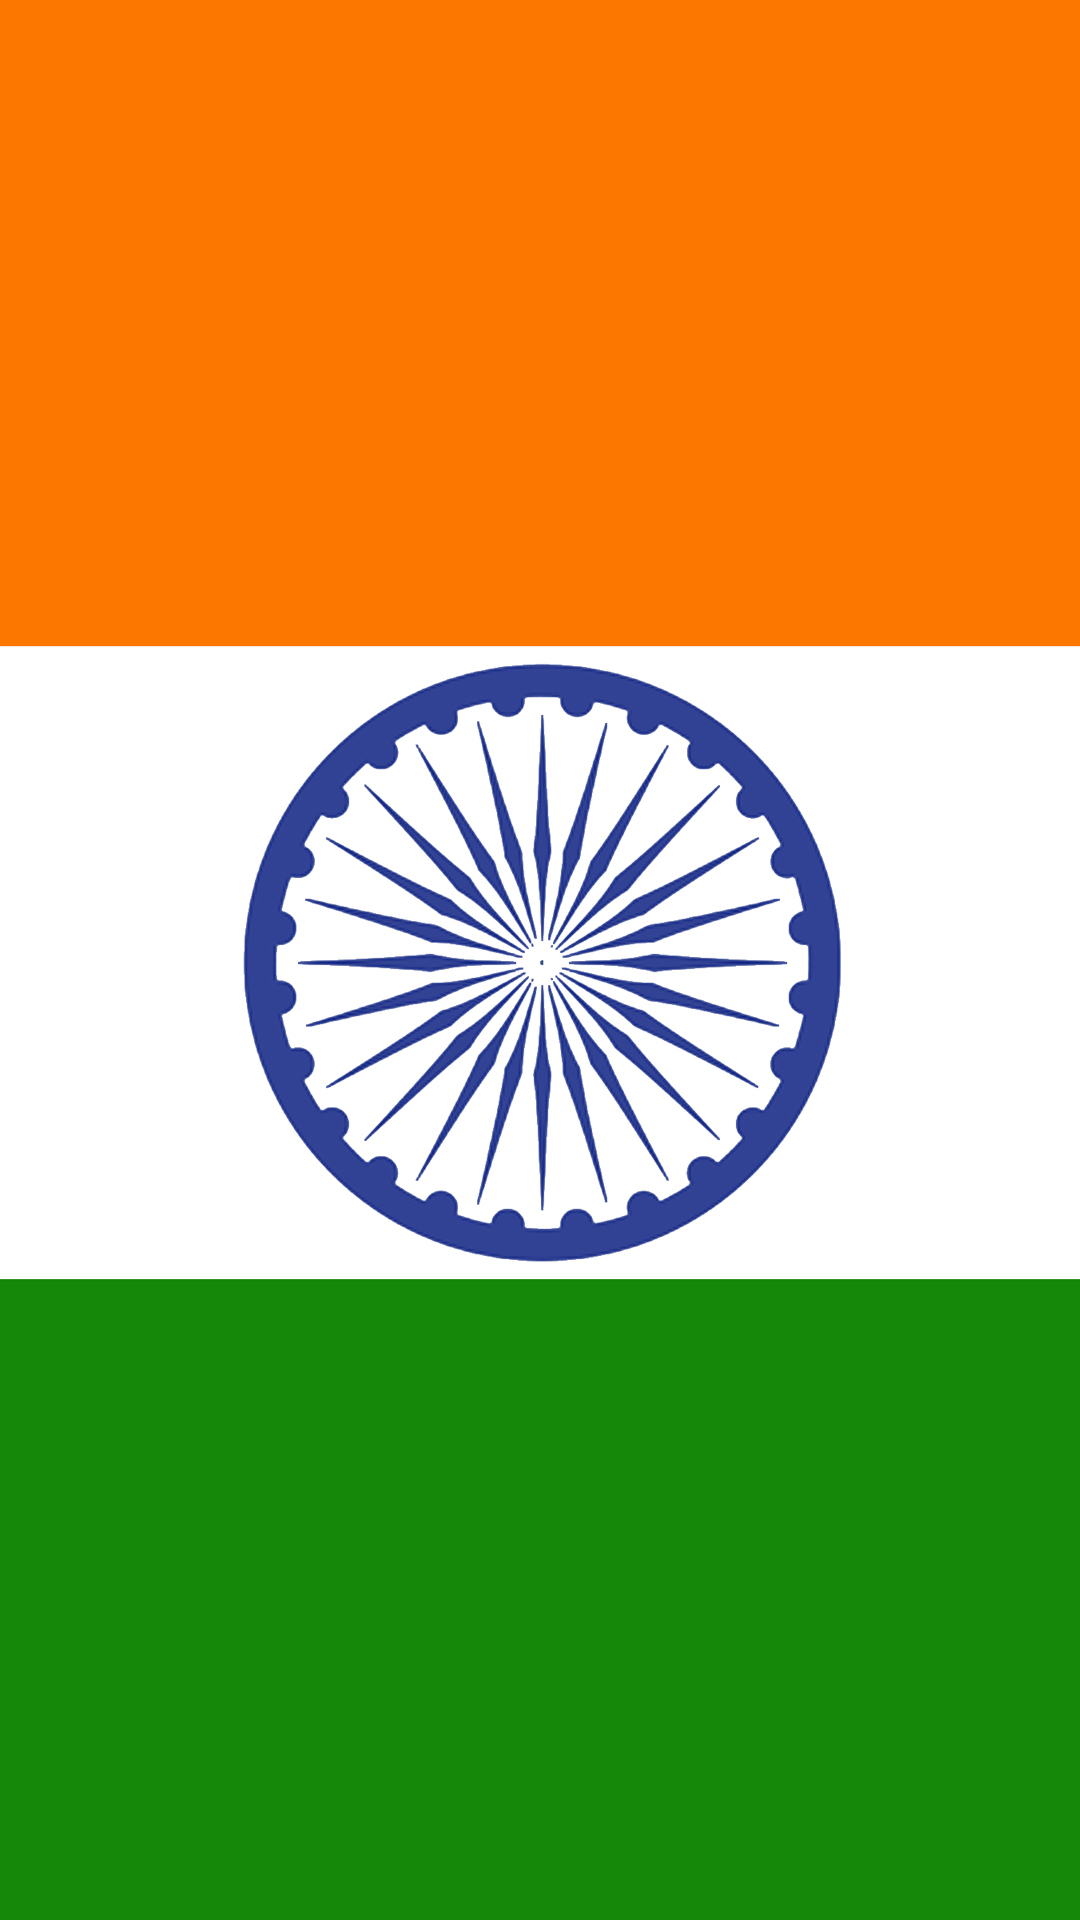 Indian Tiranga 3d Wallpaper India Flag For Mobile Phone Wallpaper 01 Of 17 Pictures